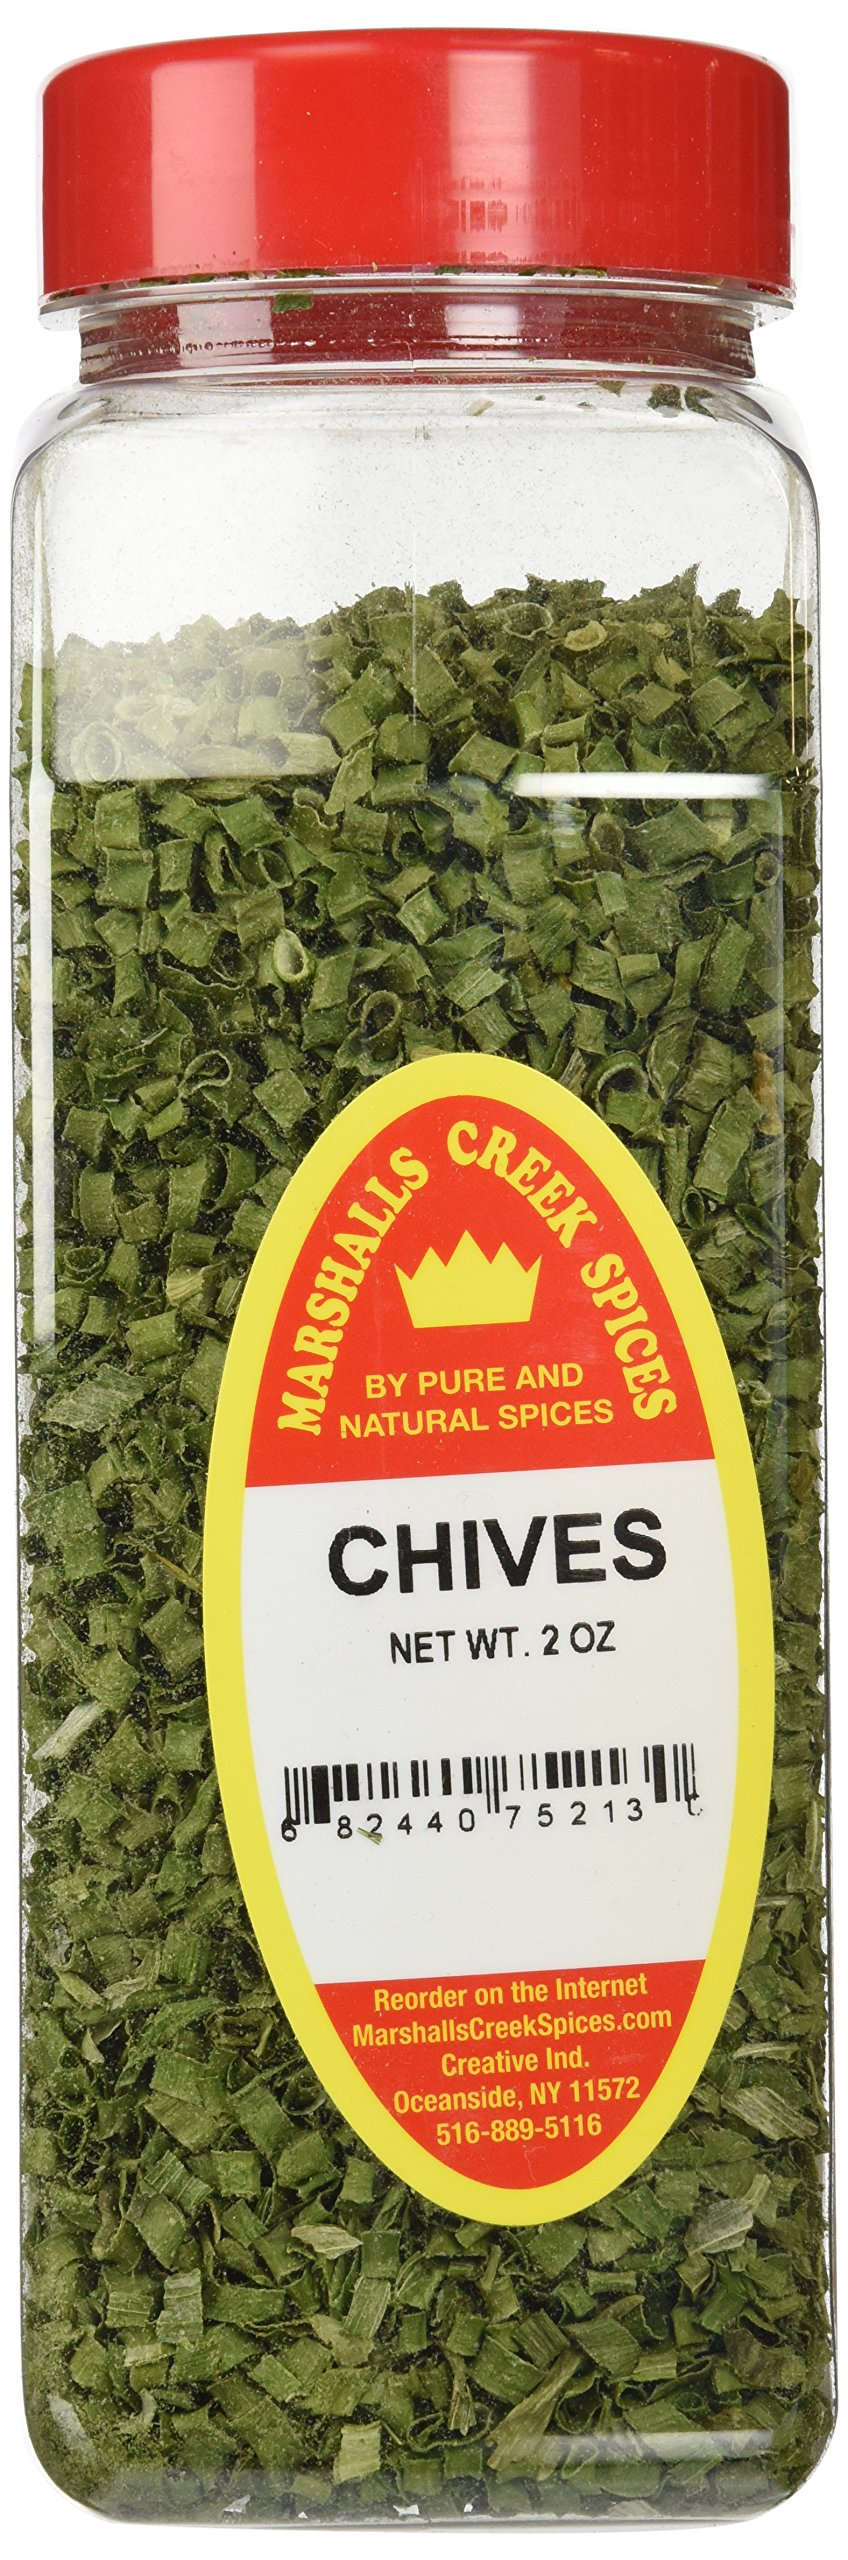 Marshalls Creek Spices X-Large Size Chives Spices, 2 Ounces